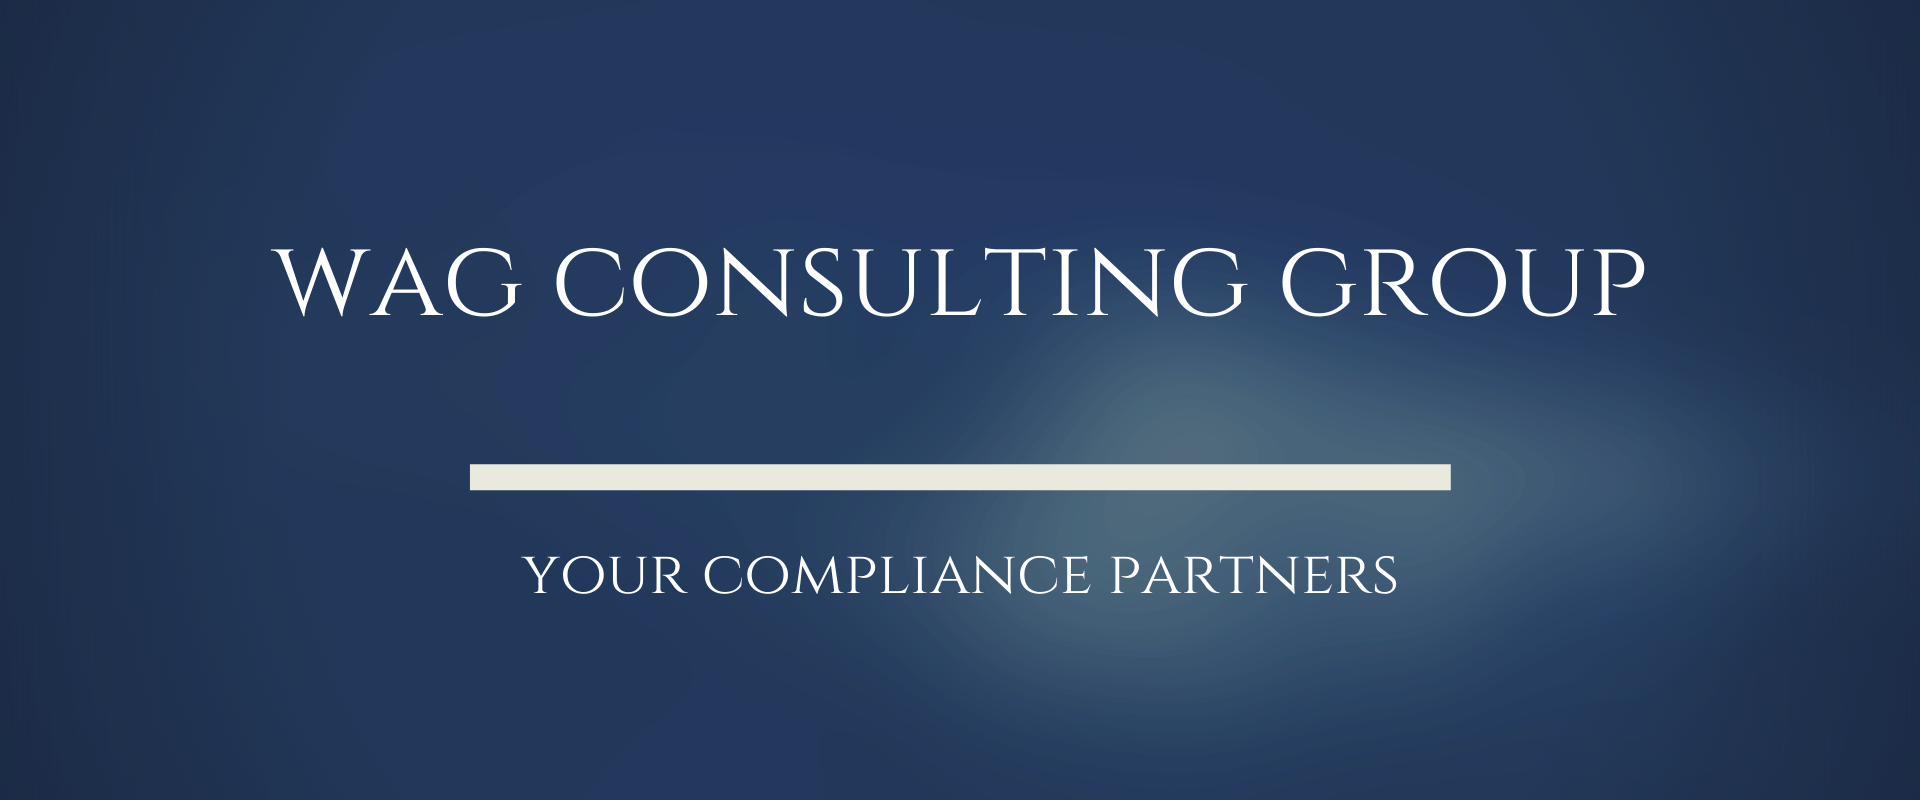 WAG Consulting